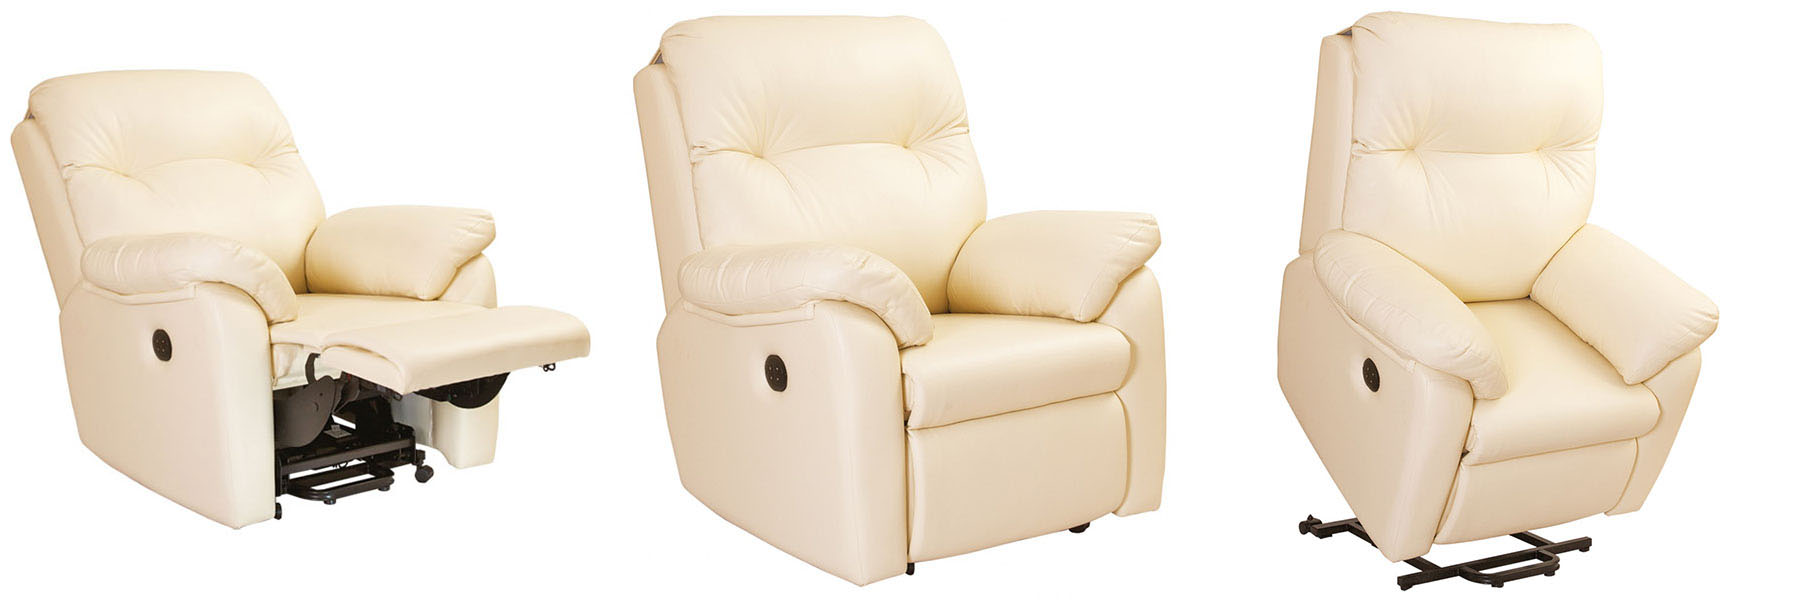 The Kensington rise and recliner chair